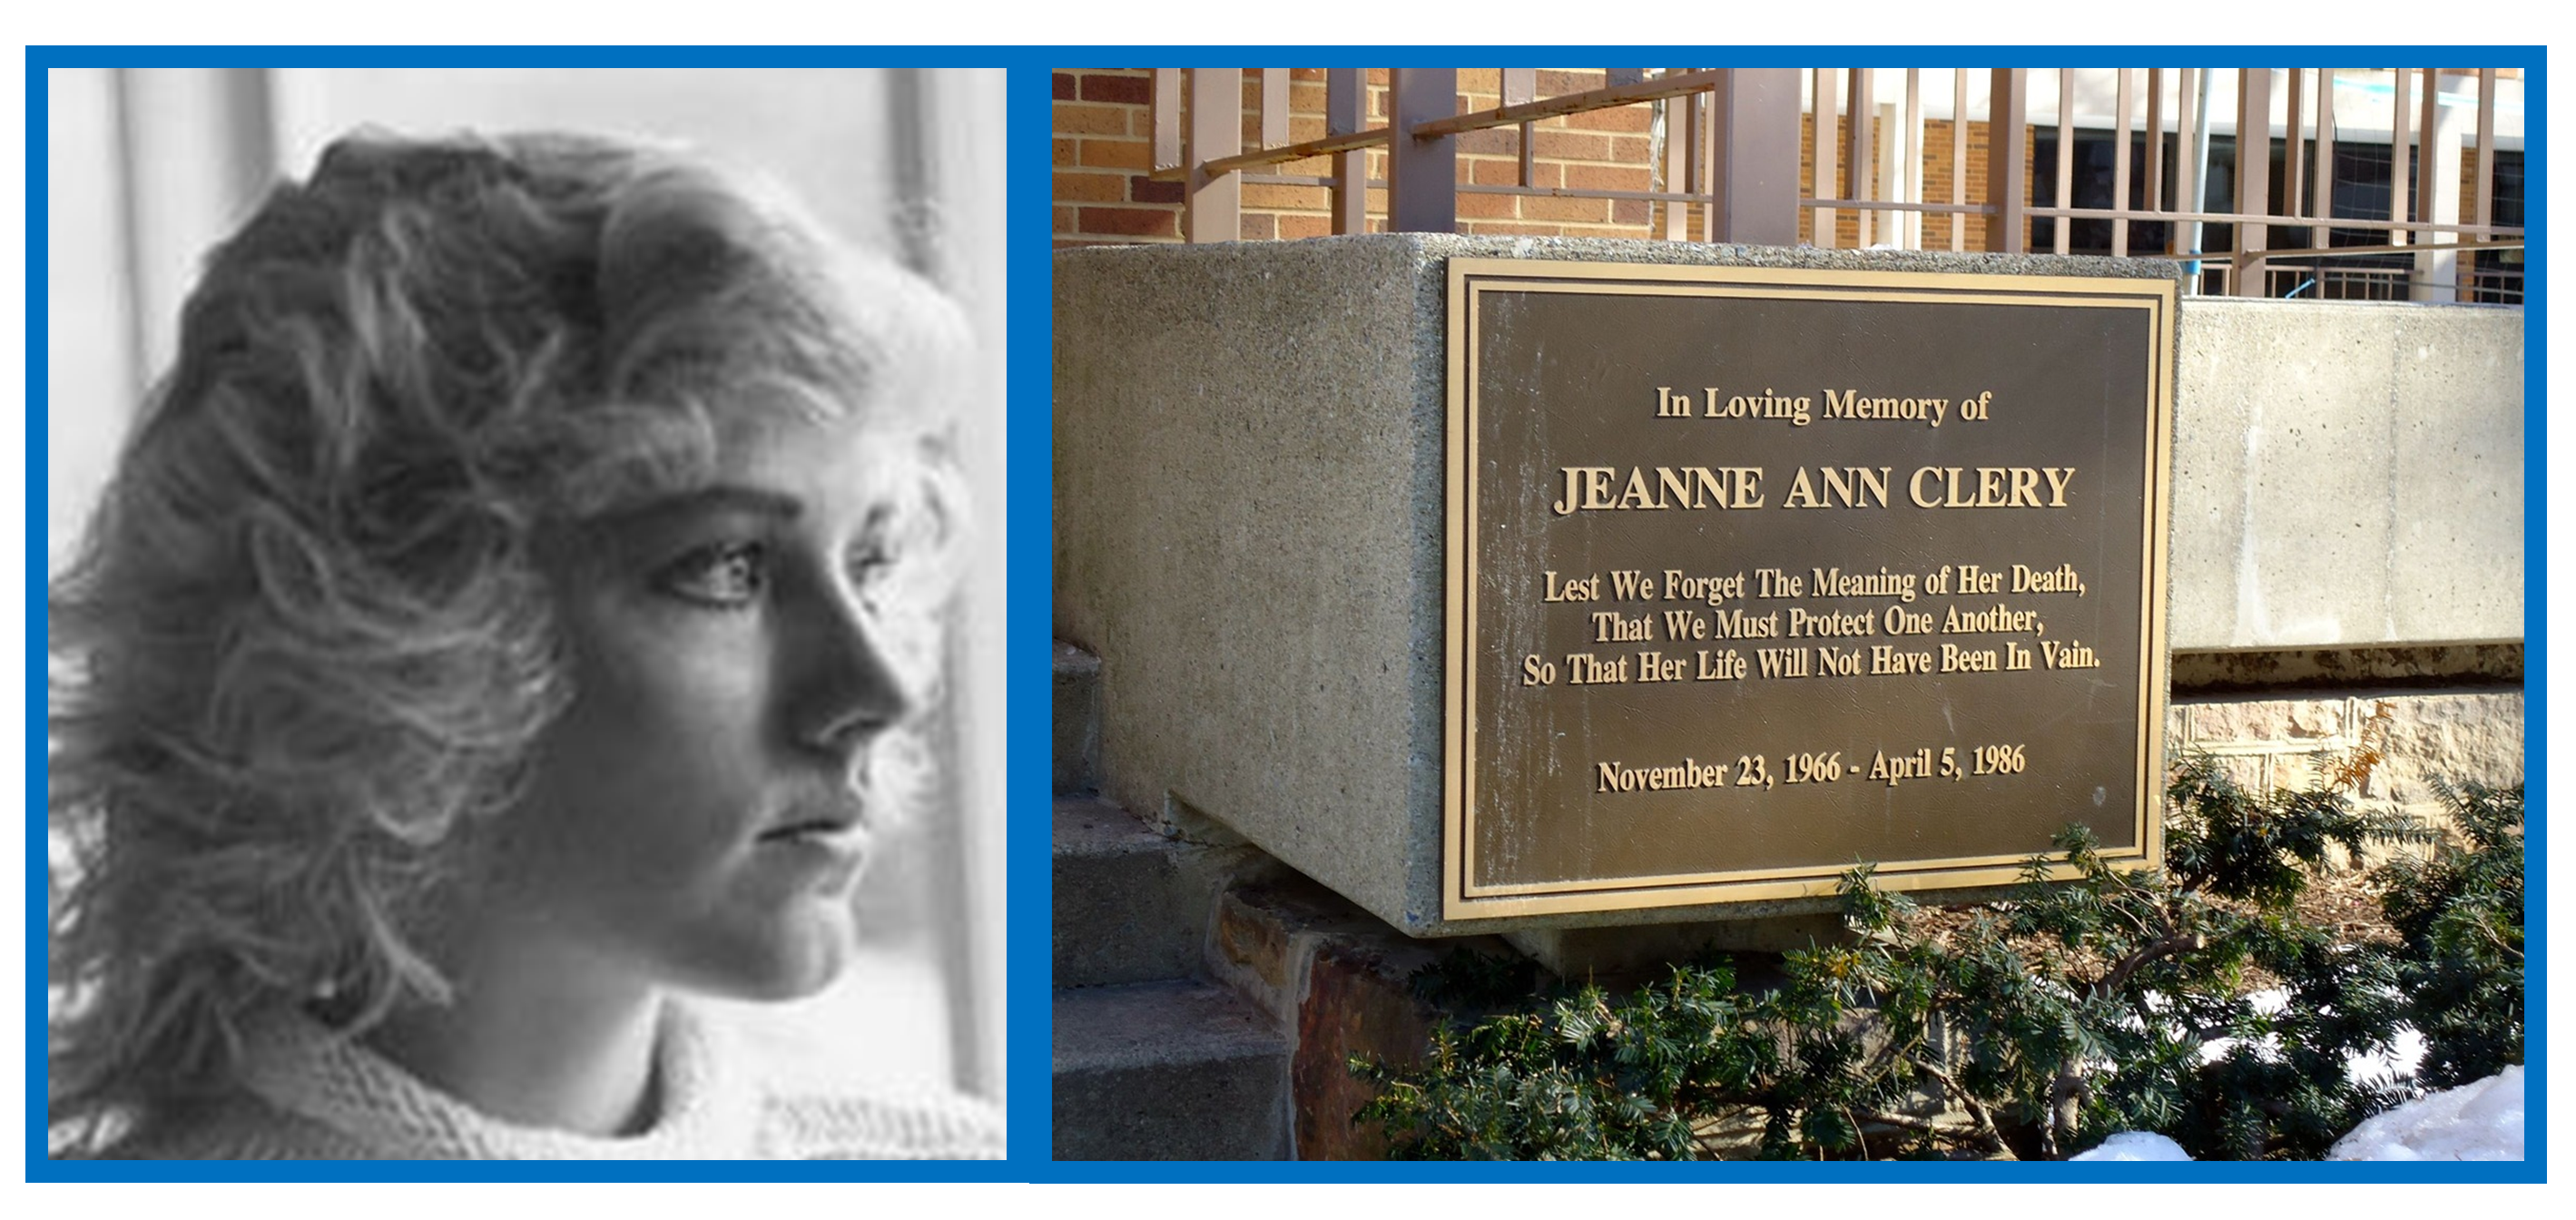 Photo of Jeanne Ann Clery and memorial marker.